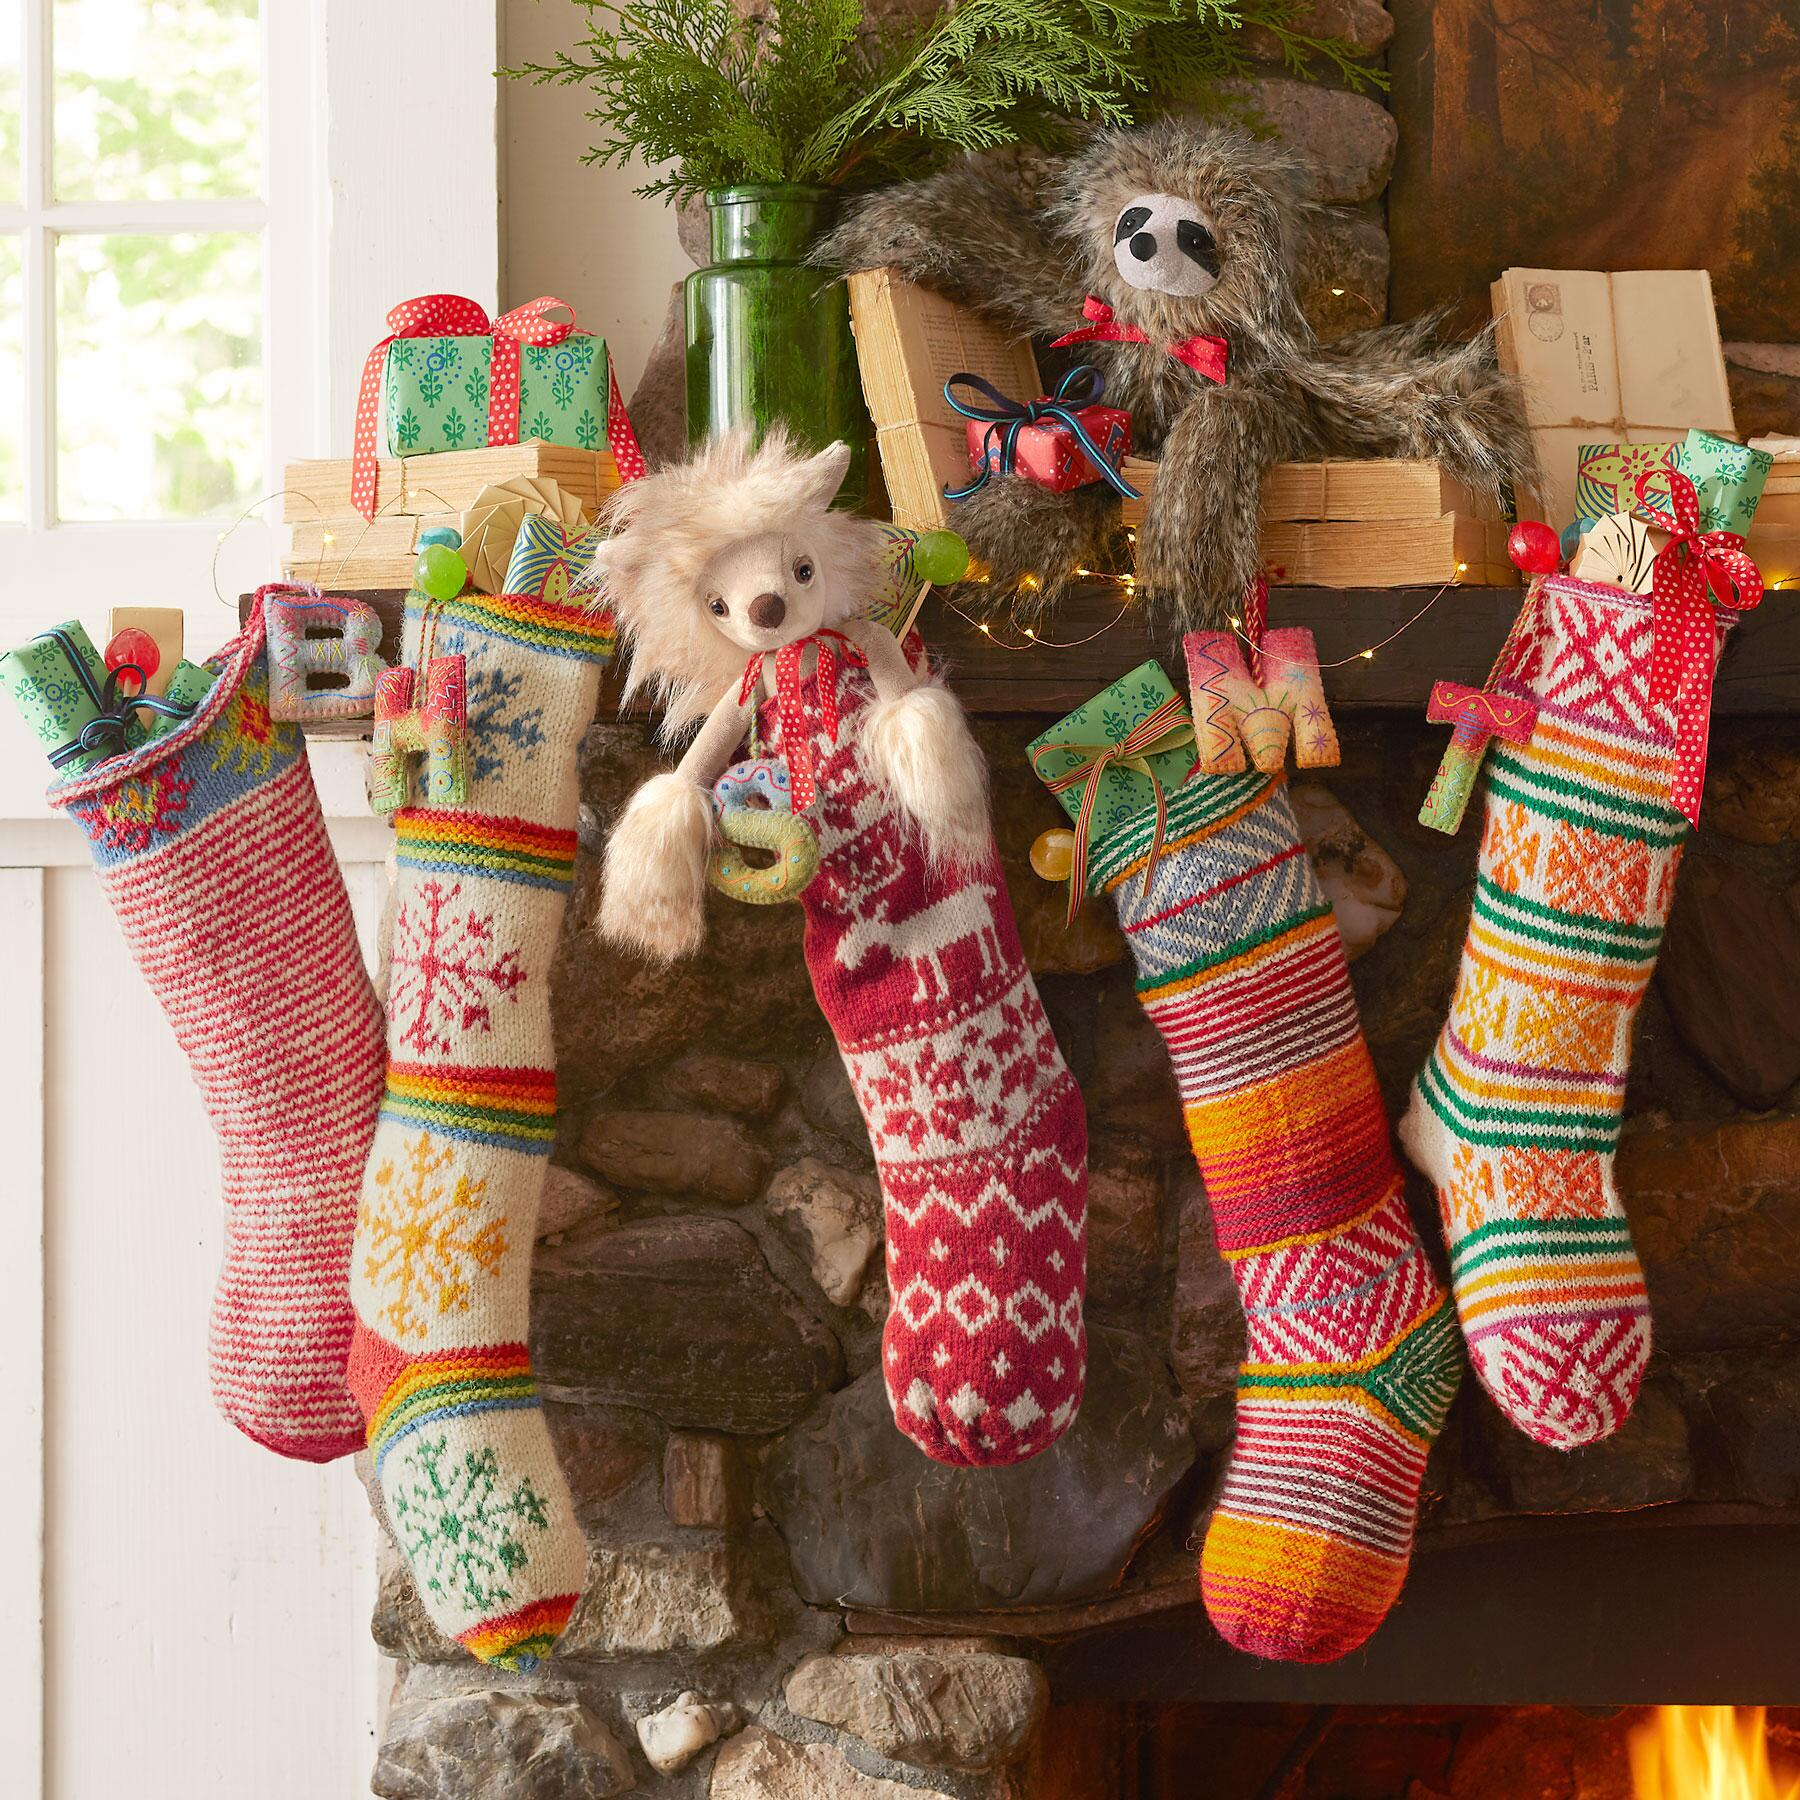 Knitted Christmas Stockings.Hand Knit Christmas Stockings Robert Redford S Sundance